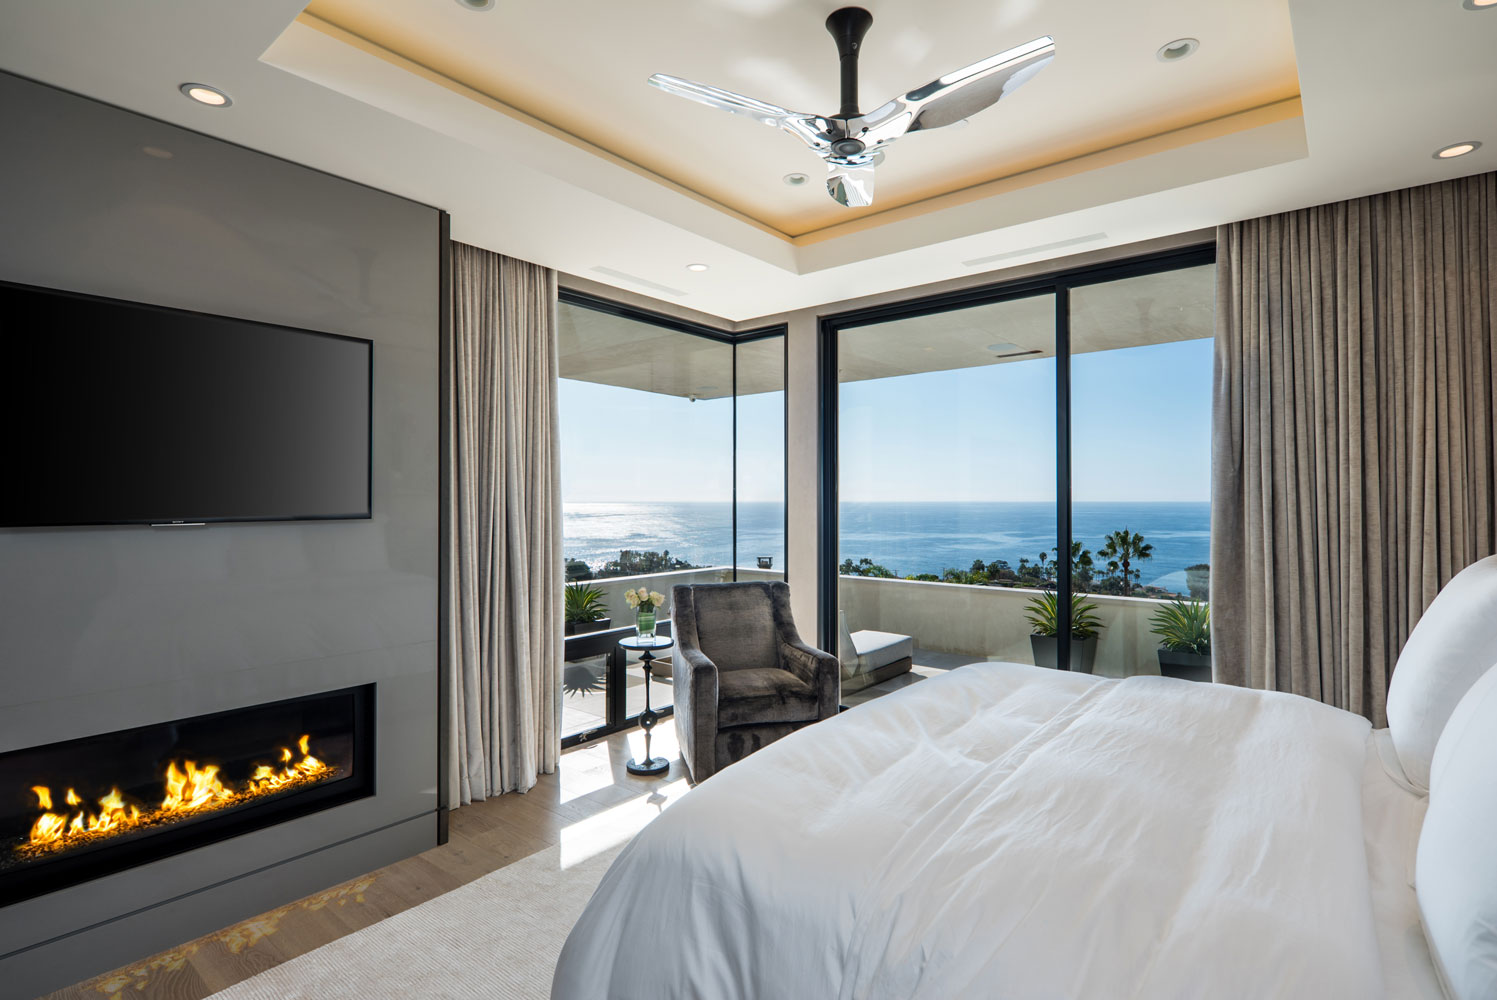 Contemporary-Master-Bedroom-Fireplace-Ocean-Views-Corbin-Reeves.jpg